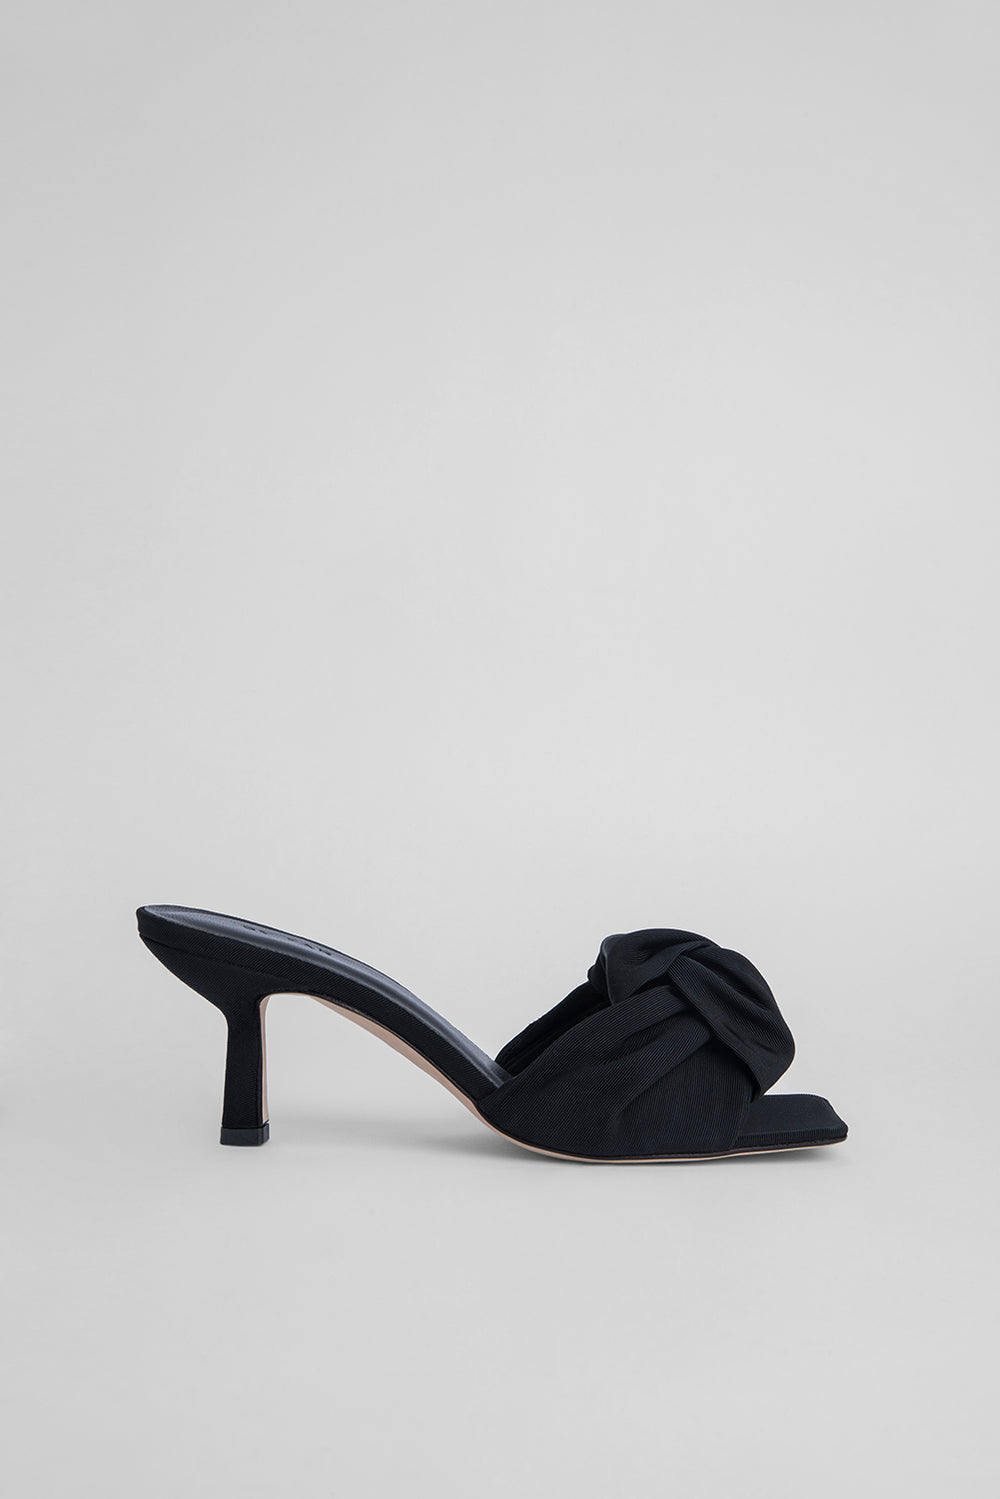 Lana Black Grosgrain